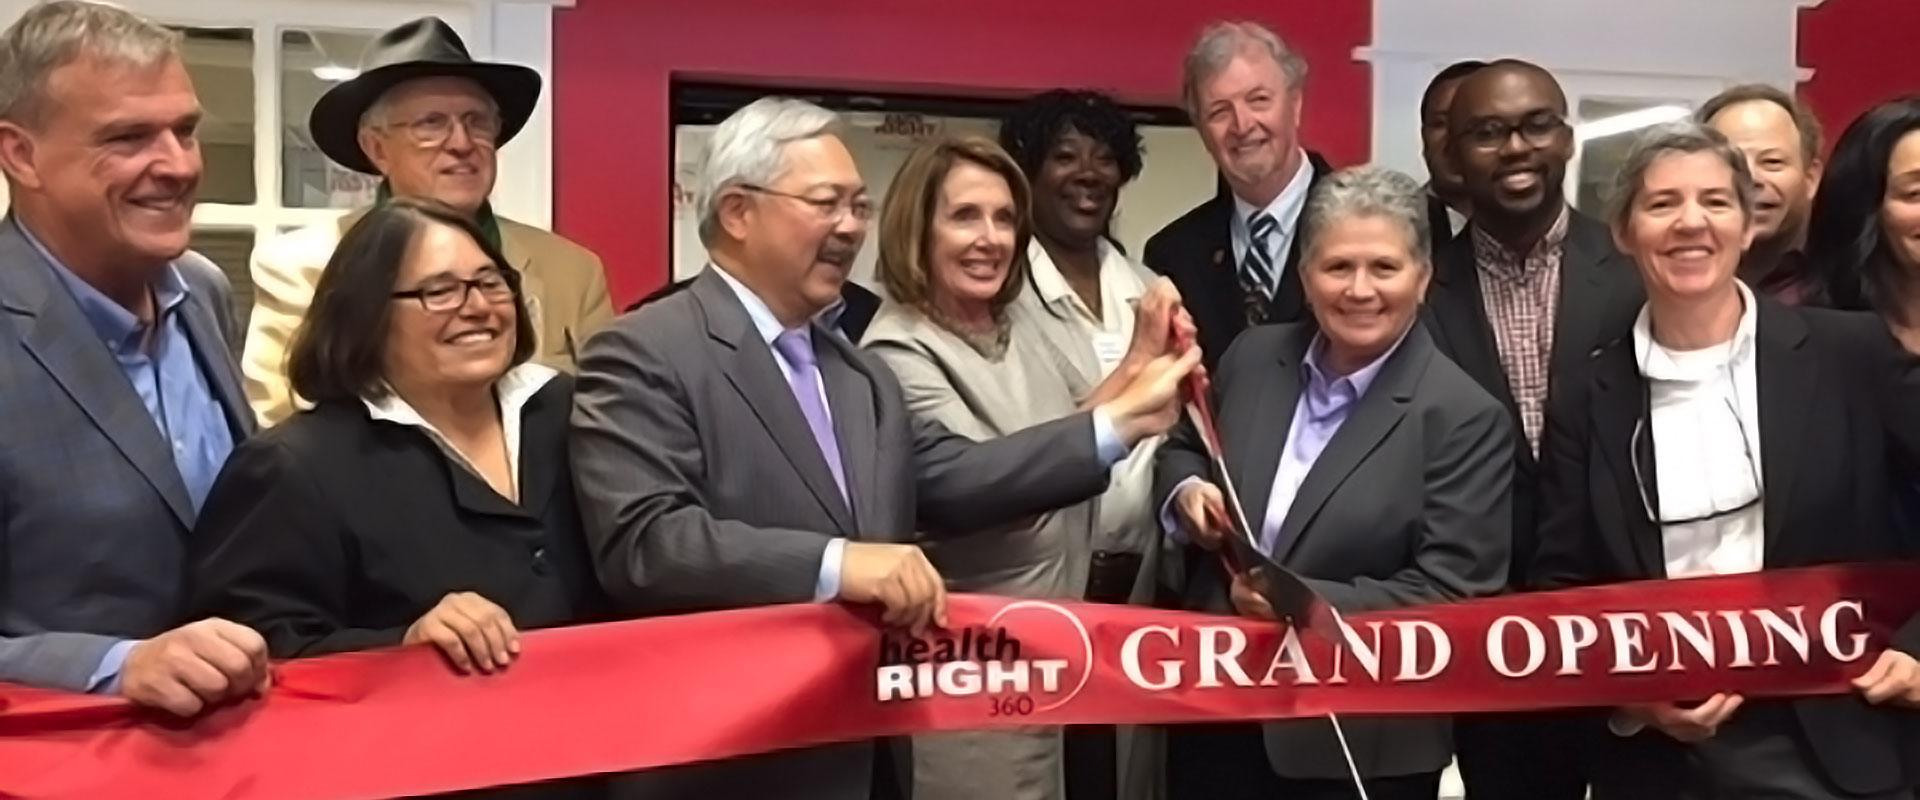 Congresswoman Pelosi, Mayor Ed Lee, CEO Dr. Vitka Eisen, community and business leaders celebrate the opening of HealthRIGHT 360 in SoMA, the first medical center in California to offer integrated care, comprehensive medical and social services, mental he